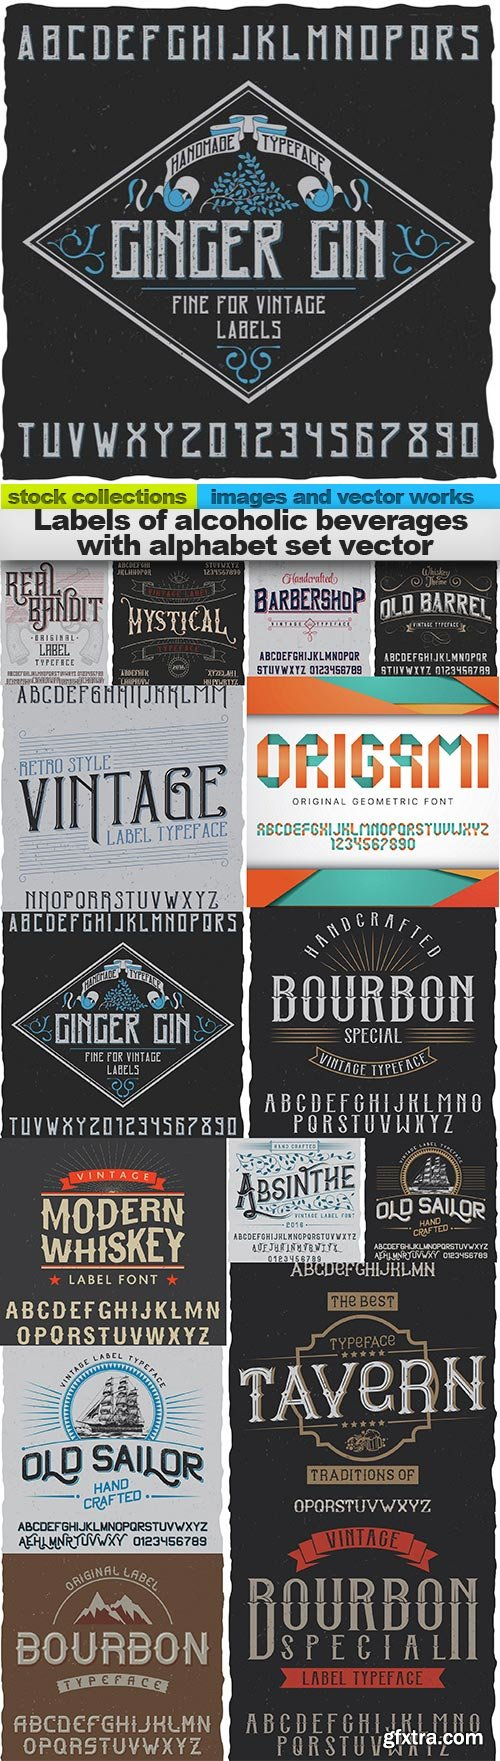 Labels of alcoholic beverages with alphabet set vector, 15 x EPS